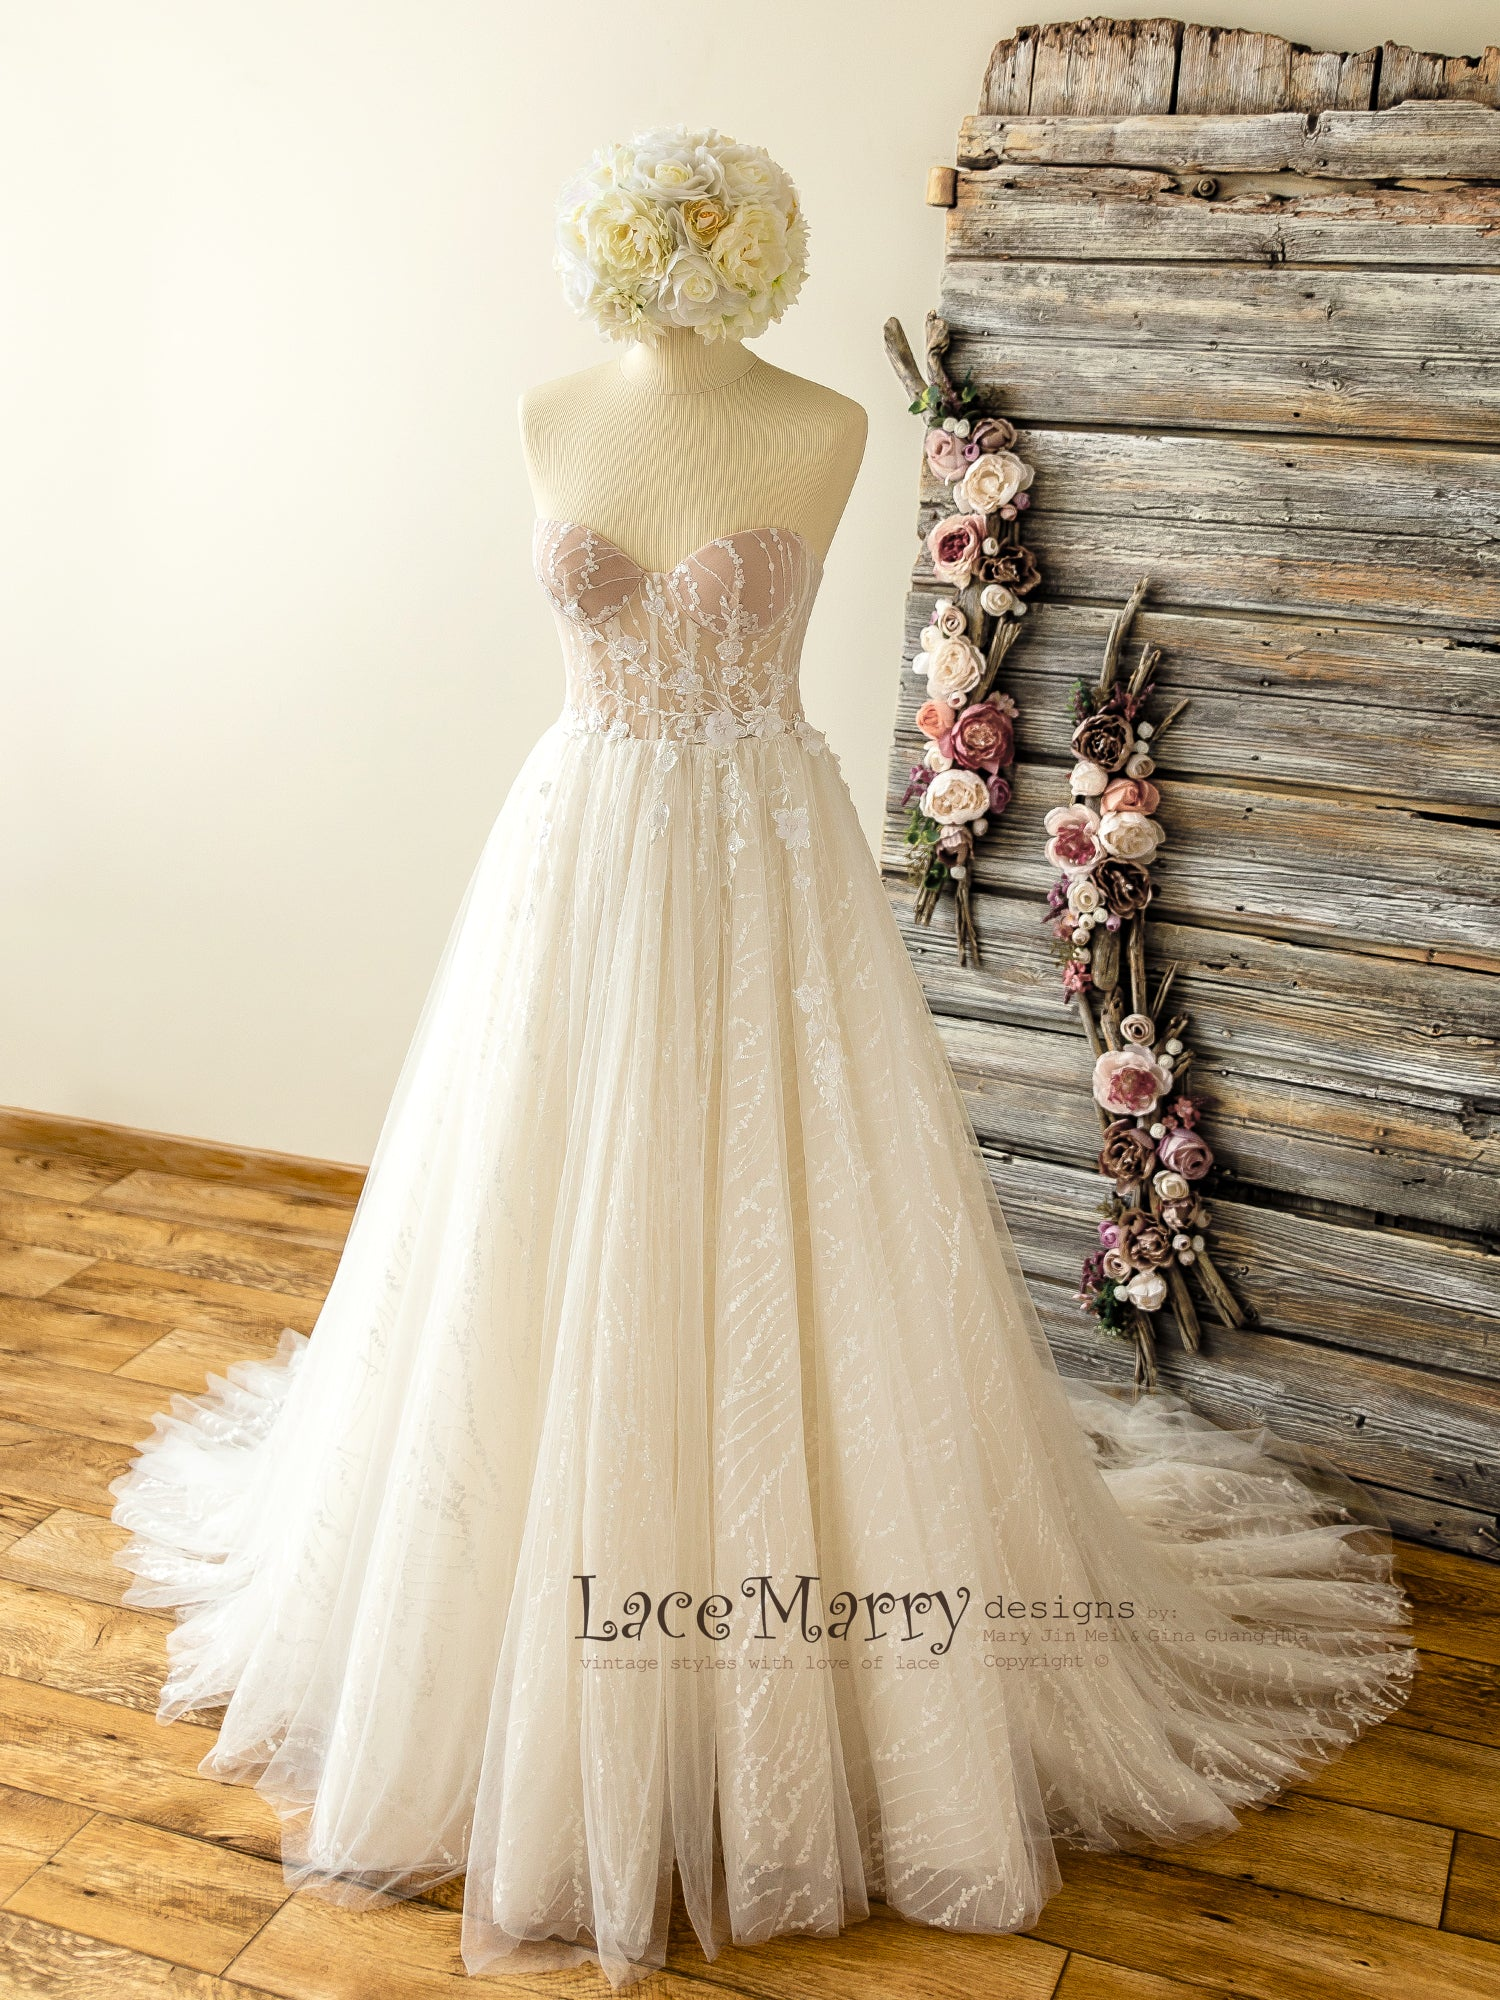 Sparkly Lace Wedding Dress With Strapless Bustier Neckline